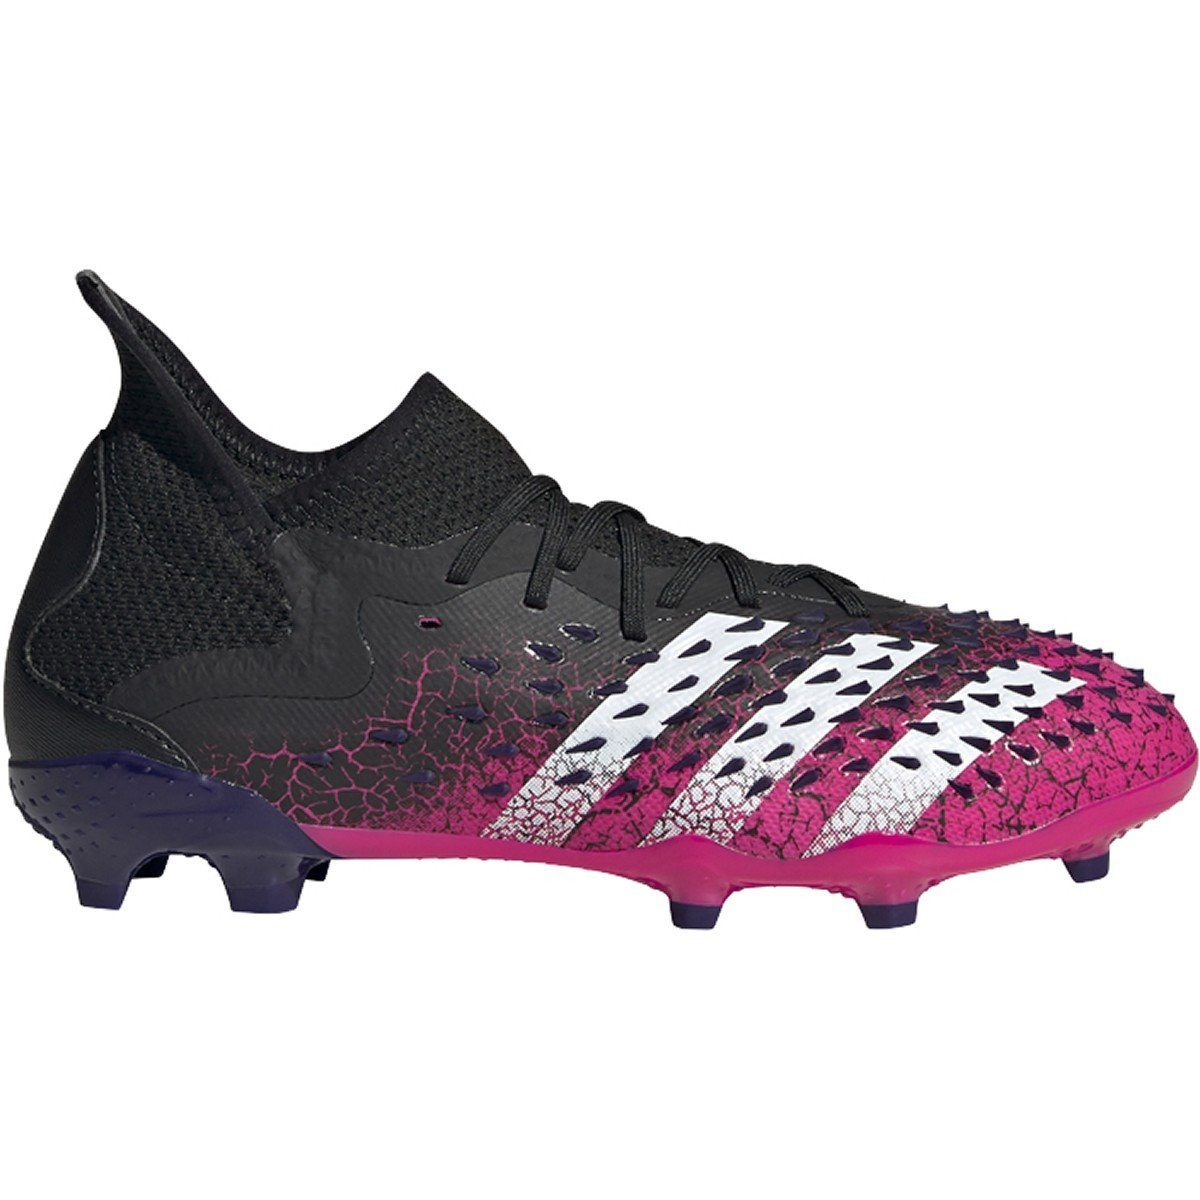 adidas Unisex-Child Predator Freak .1 Firm Ground Soccer Cleats | FW7528 Soccer Shoes Adidas 1 Black/White/Shock Pink